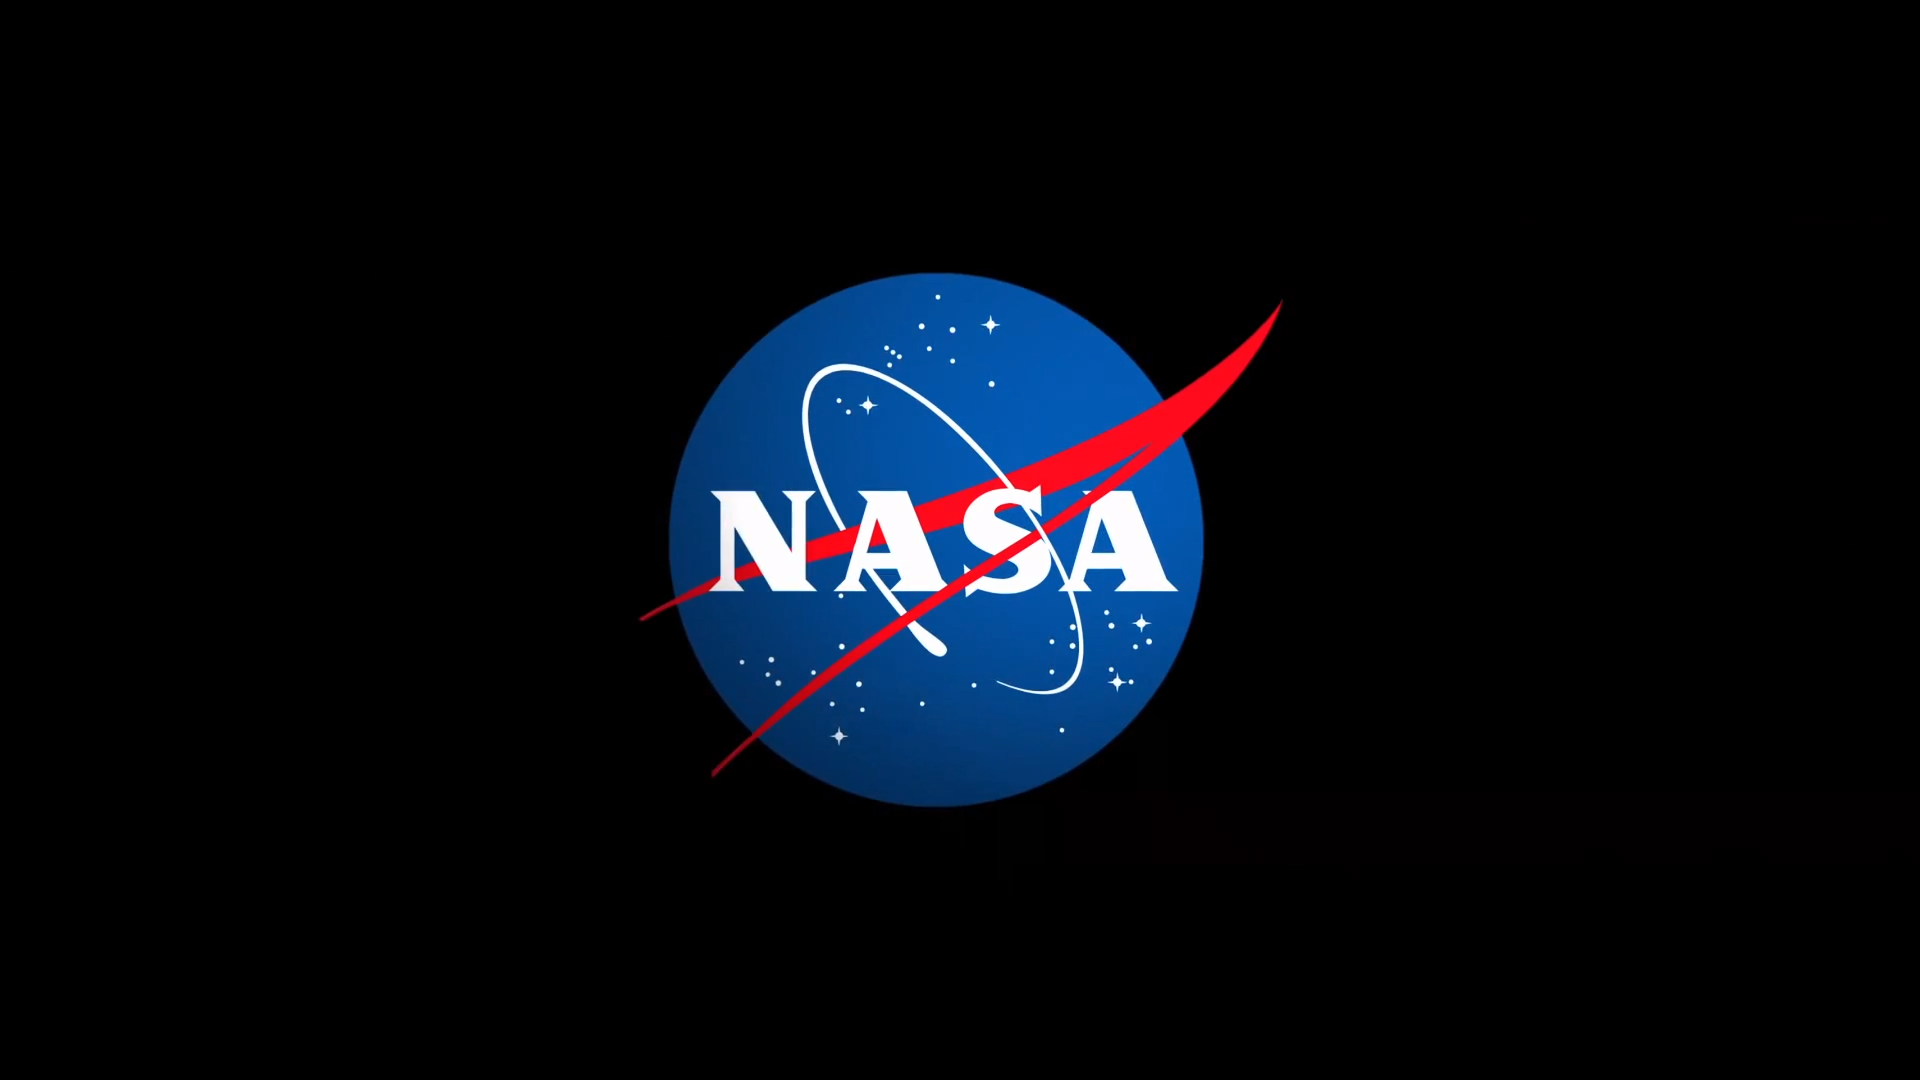 Nasa Logo Wallpapers 1920x1080